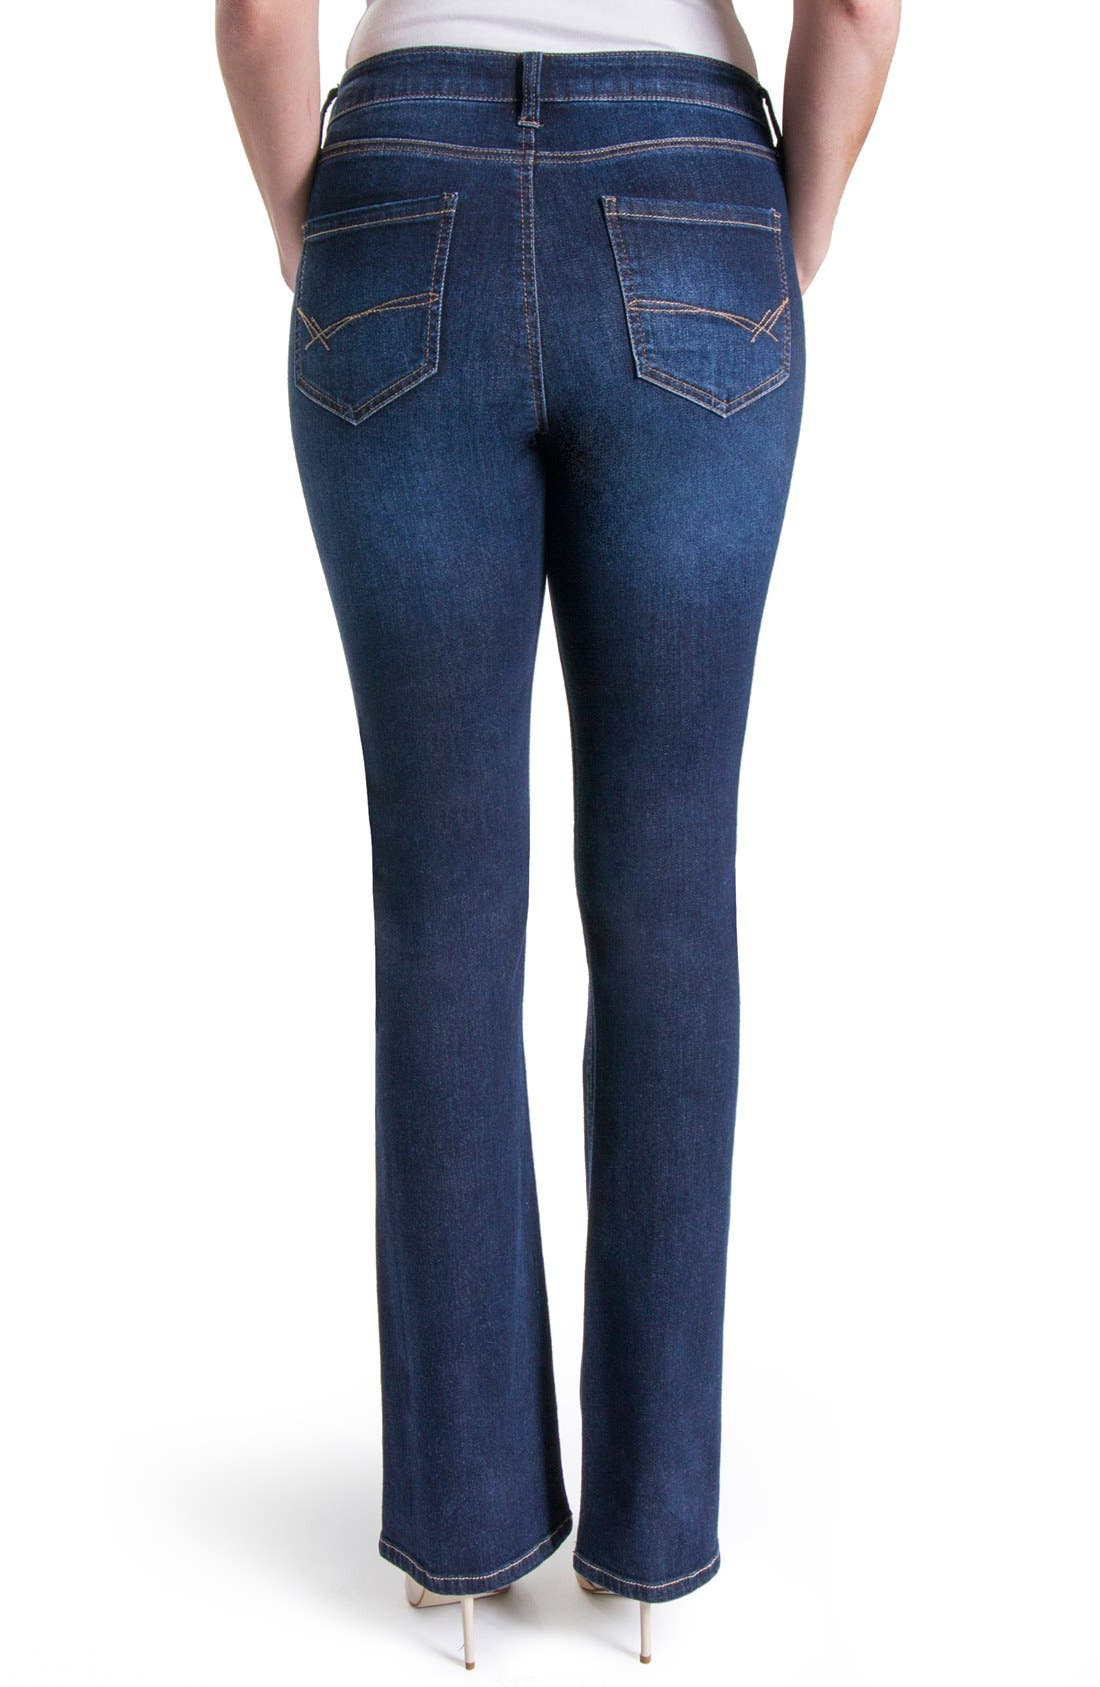 Alternate Image 2  - Liverpool Jeans Company 'Lucy' Stretch Bootcut Jeans (Vintage Super Dark) (Regular & Petite)